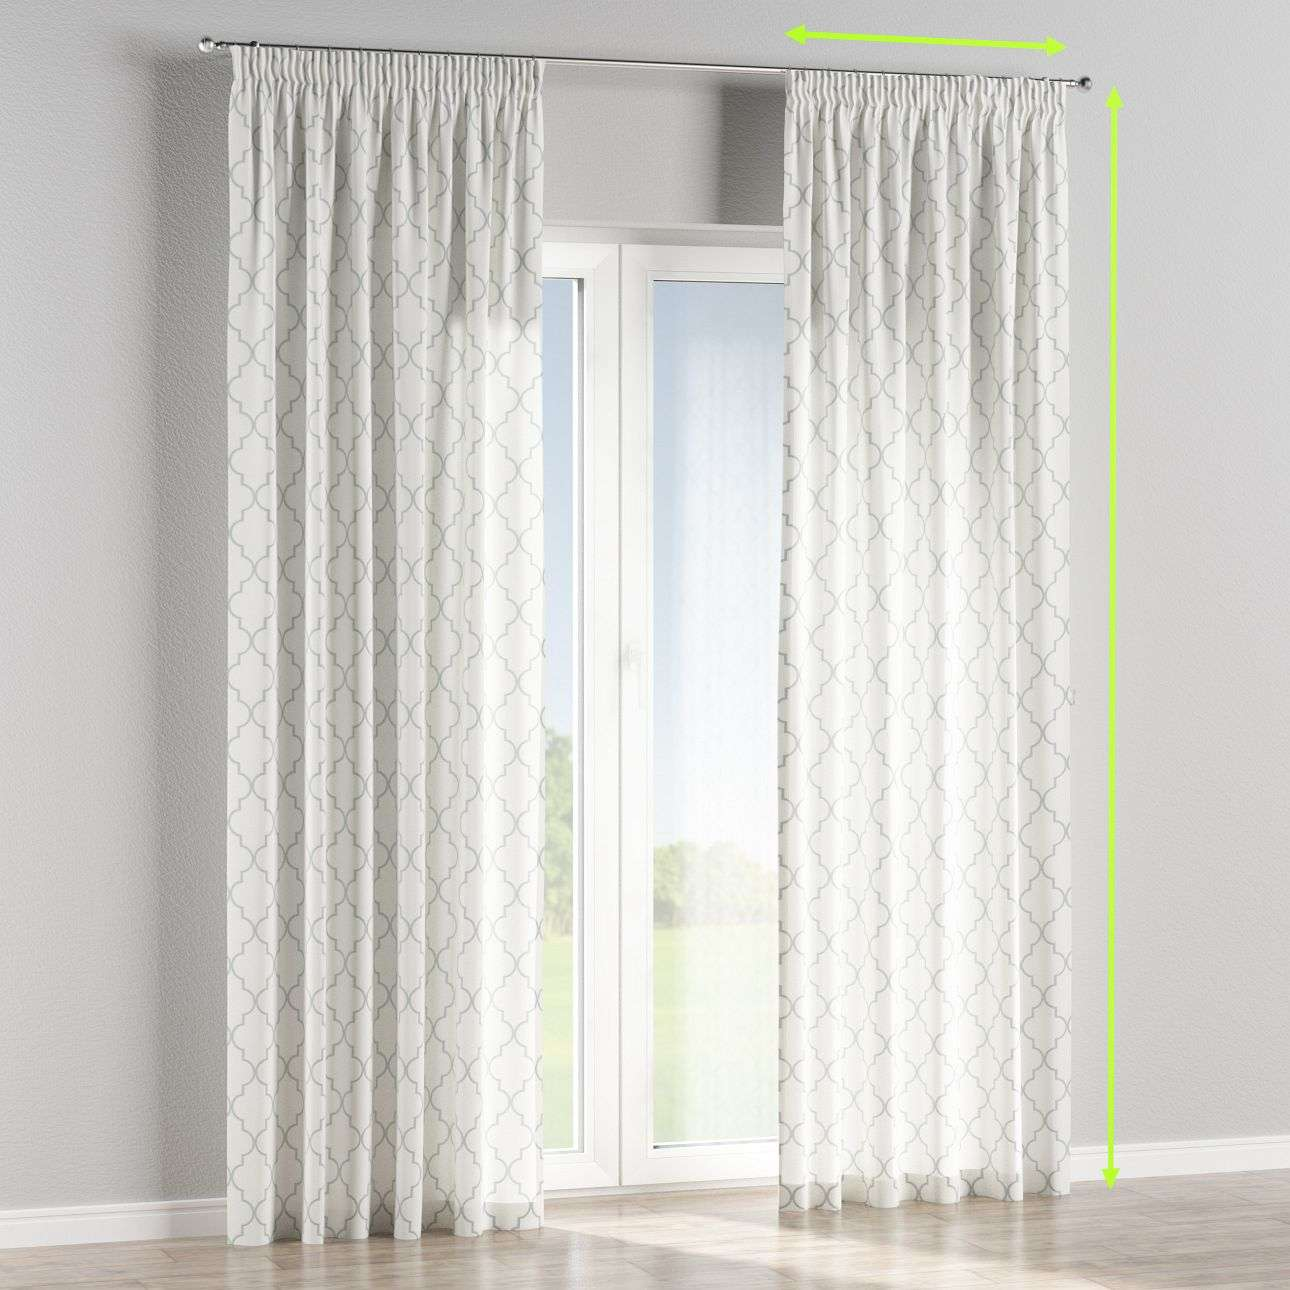 Pencil pleat lined curtains in collection Comic Book & Geo Prints, fabric: 137-85